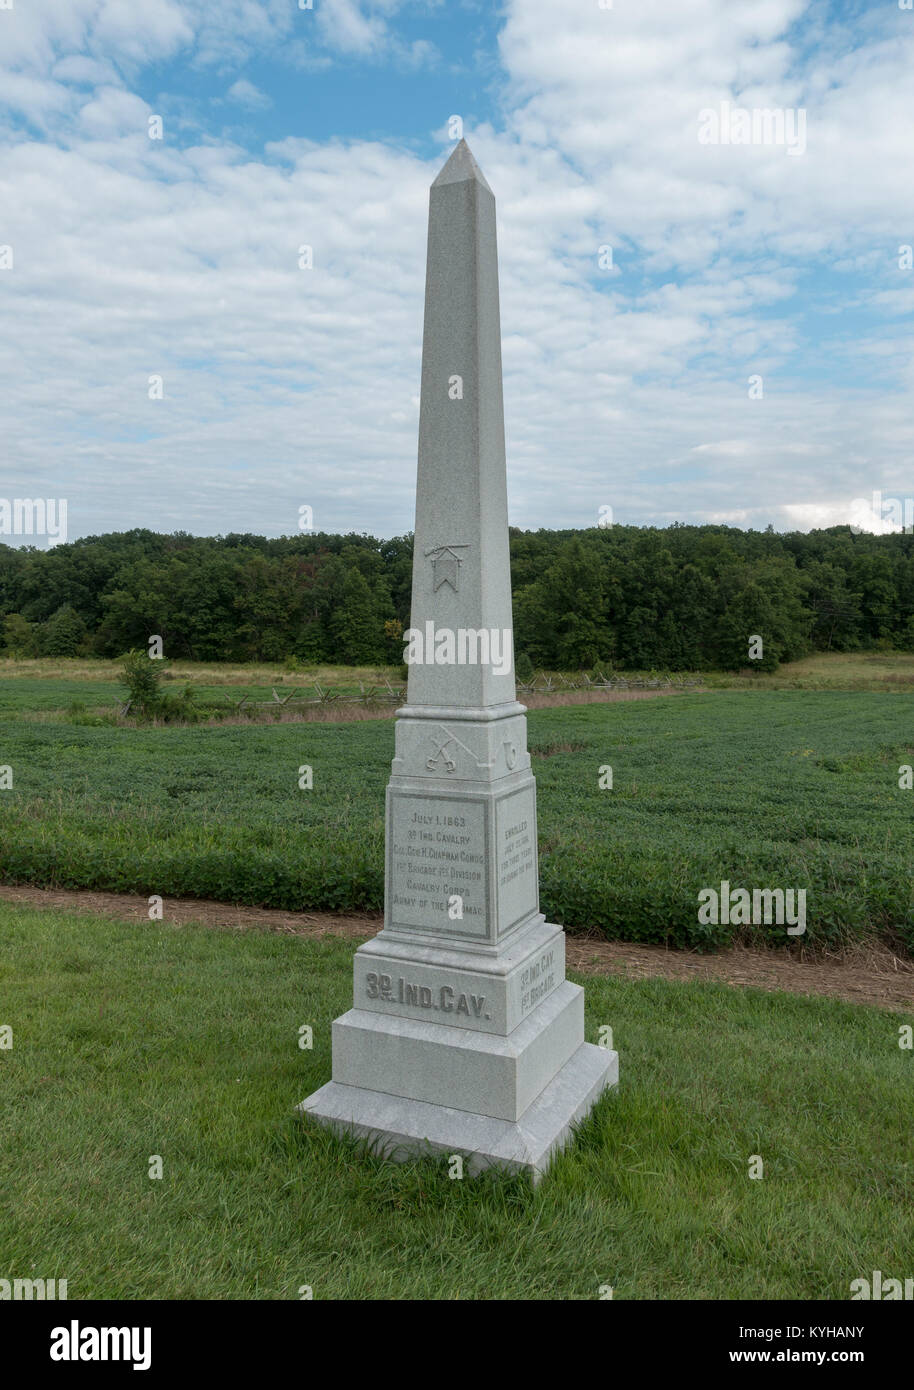 The 3rd Indiana Cavalry Monument, Gettysburg National Military Park, Pennsylvania, United States. - Stock Image